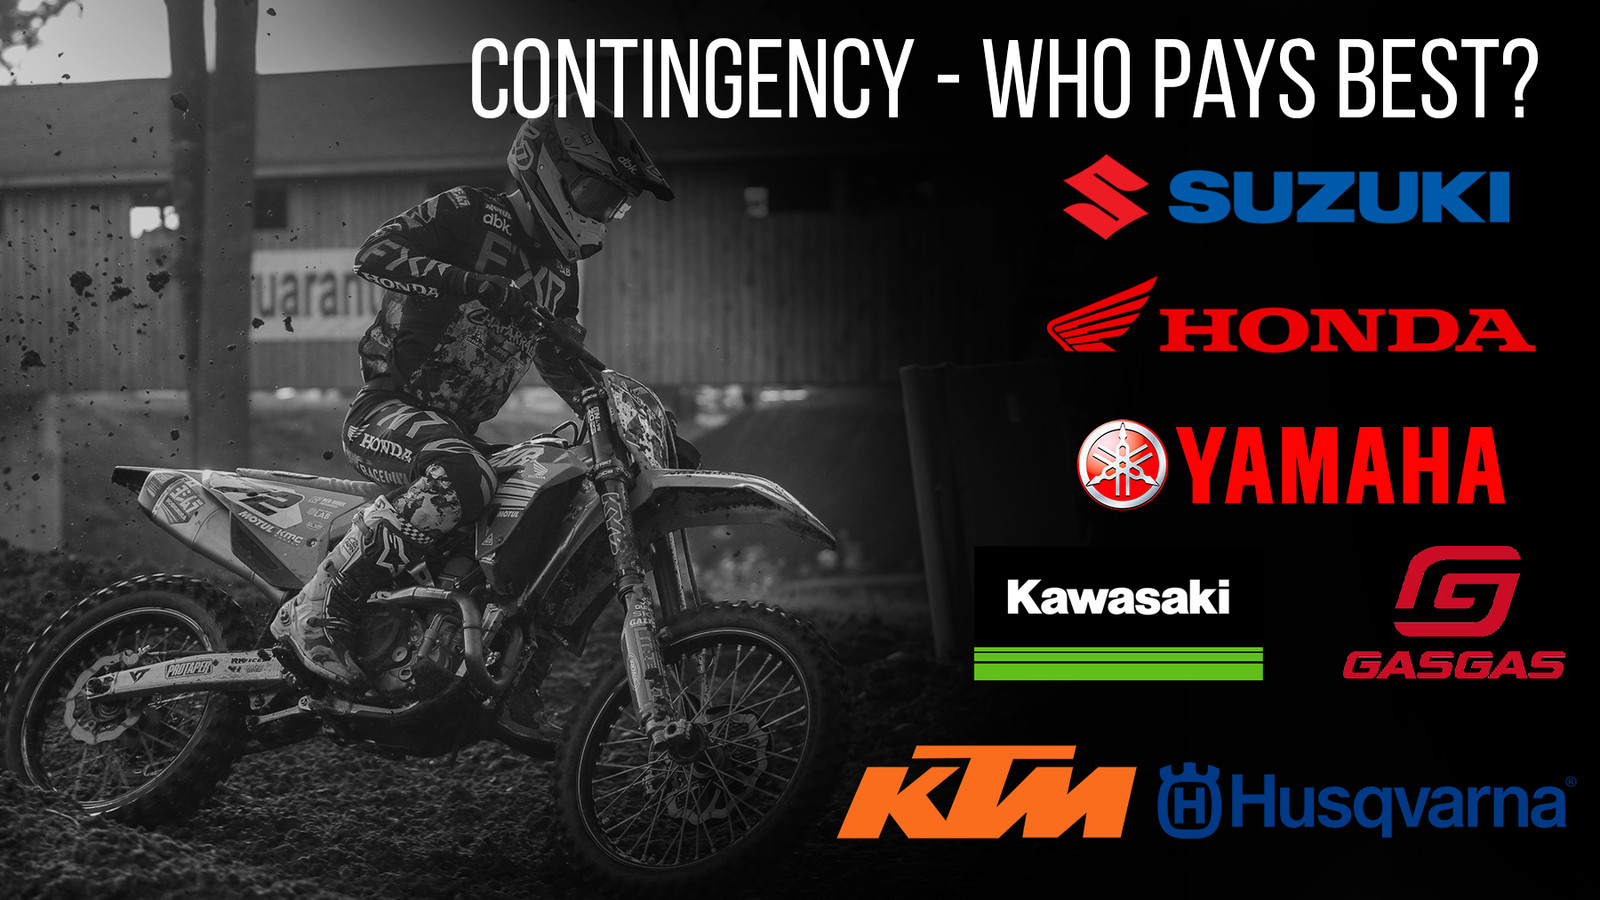 Contingency - Which Pro Made the Most? Who Pays Best?